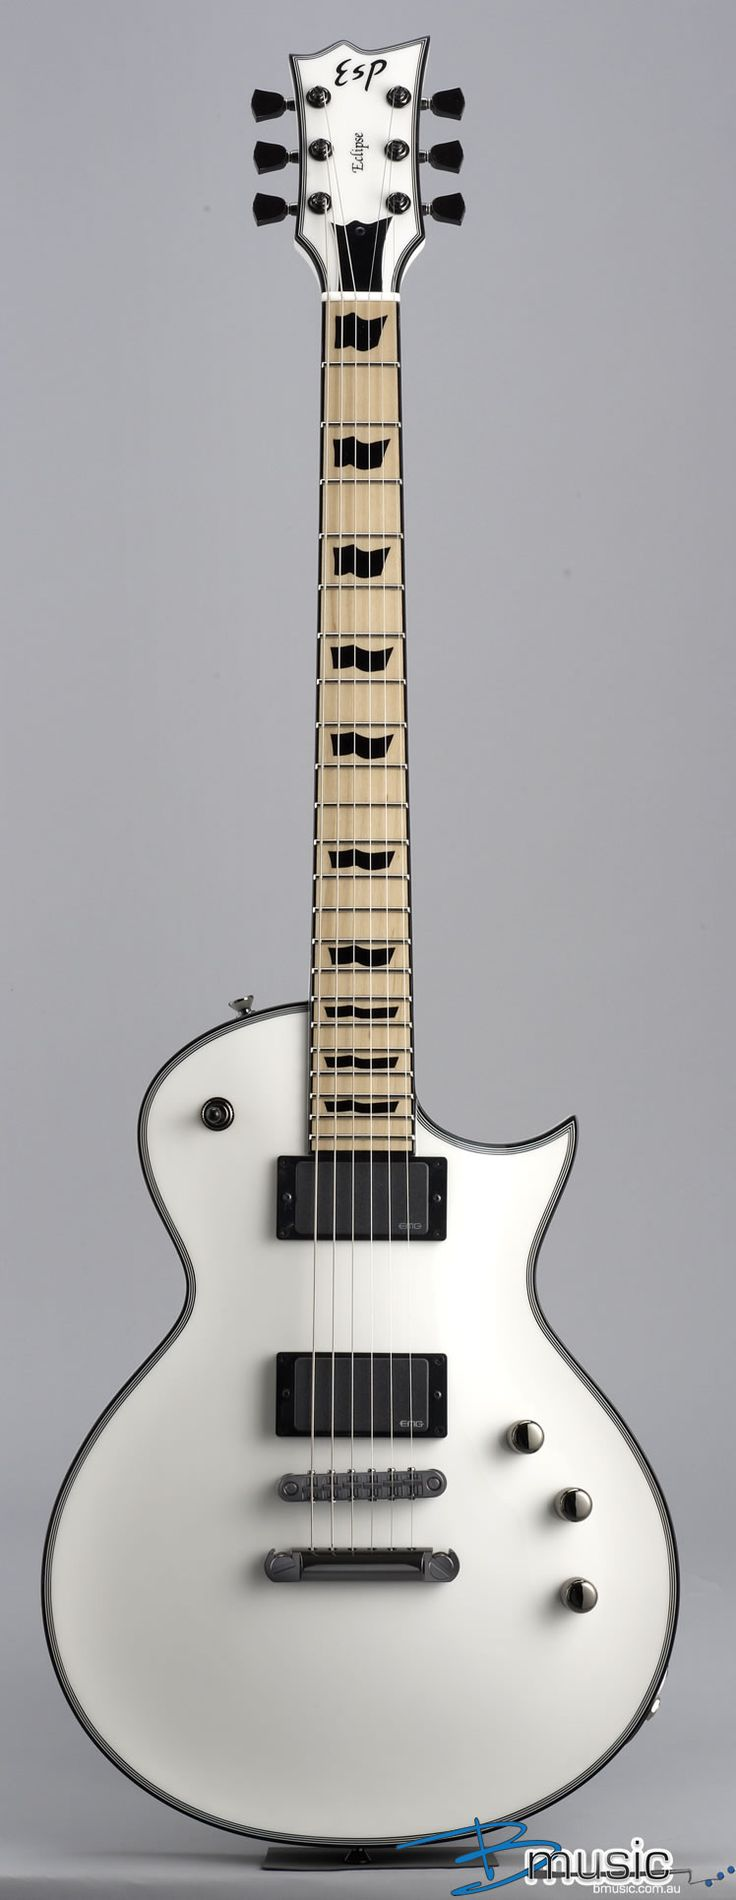 ESP Eclipse-II USA Double Bound Maple - New for 2012